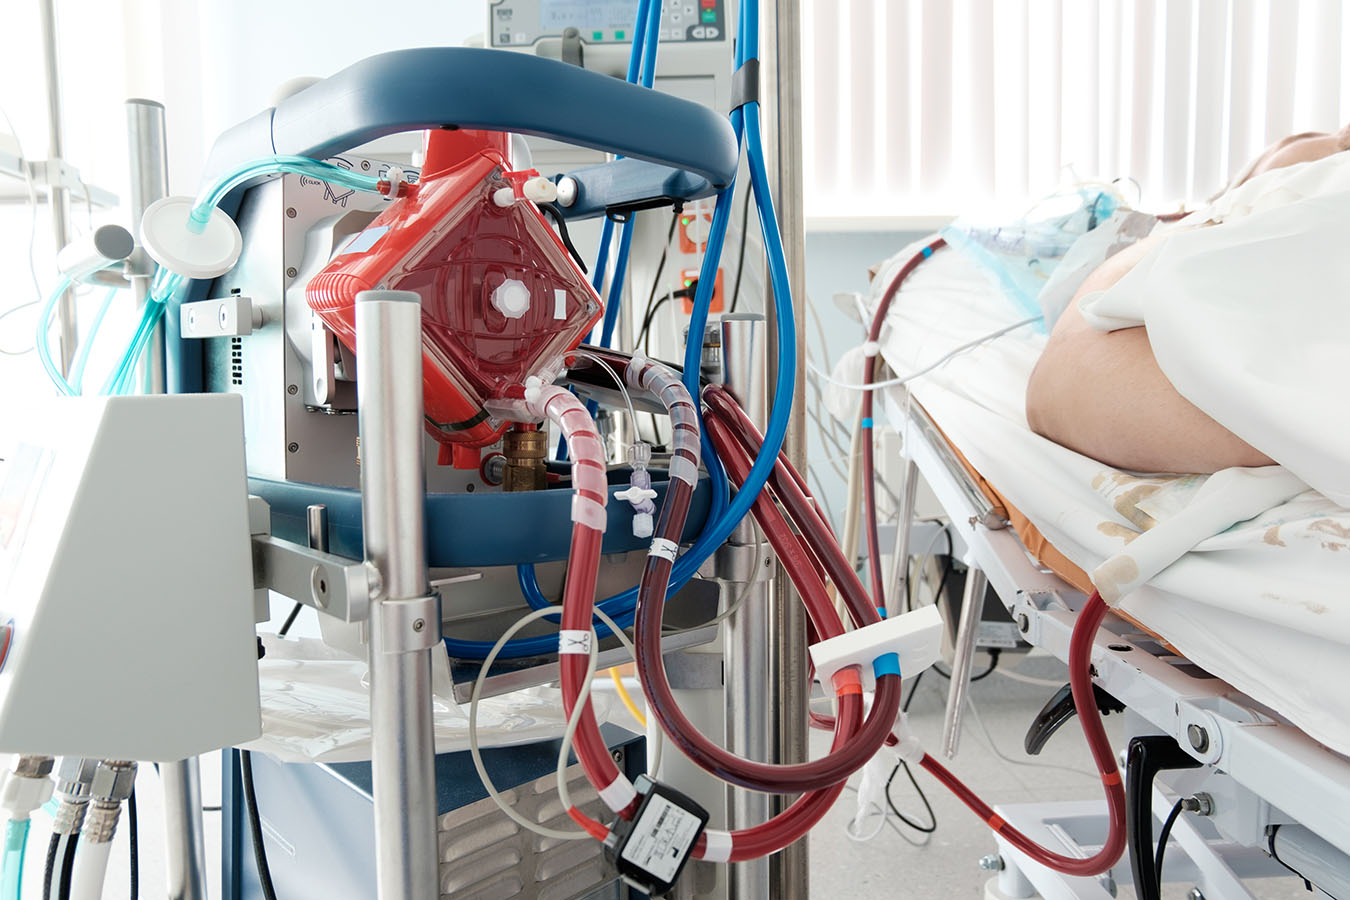 Miracle Machine Makes Heroic Rescues — And Leaves Patients In Limbo |  Kaiser Health News